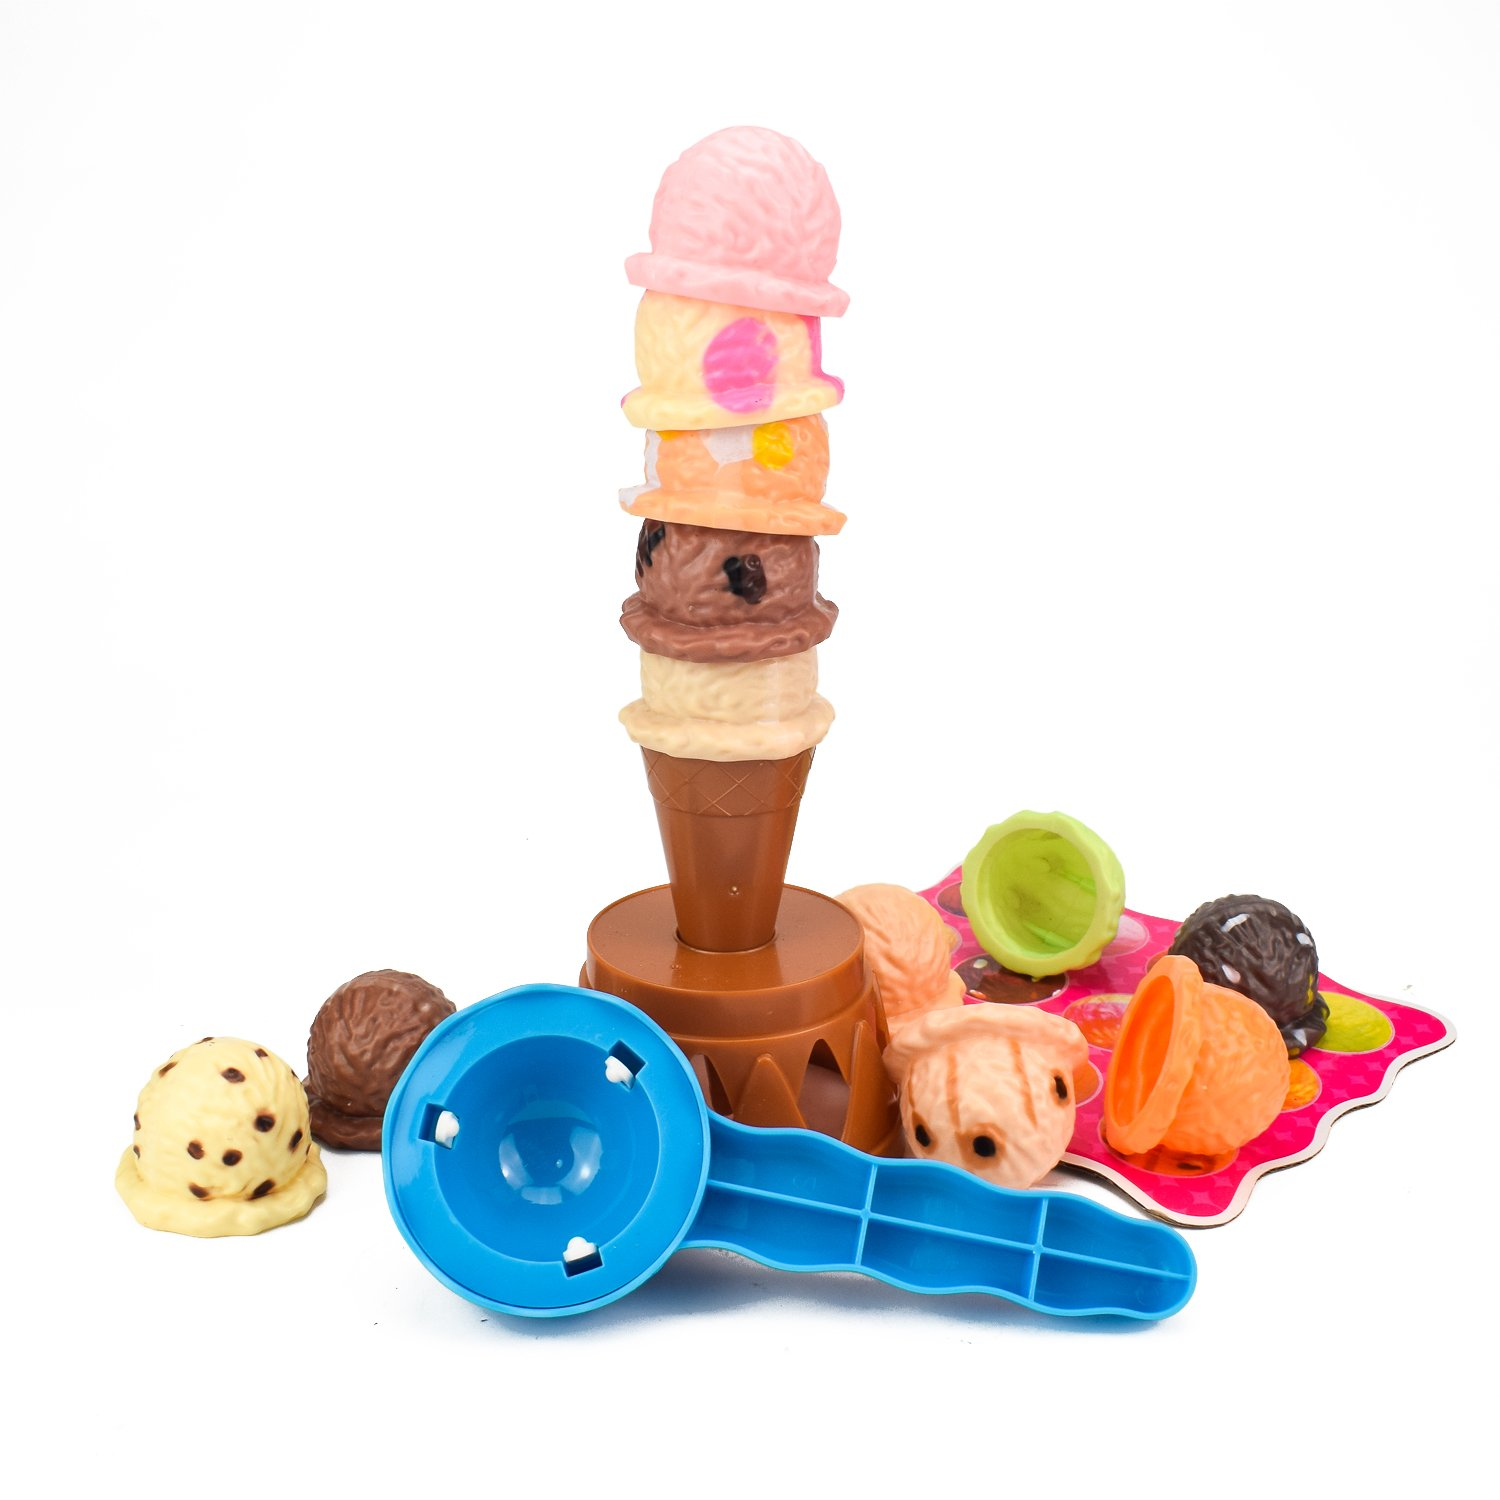 Jellydog Toy Ice Cream Stacking Tower, Ice Cream Balance Game for Kids, Food Pretend Play Toy Set, Fun Little Balance Toys for Birthday Party,12 Scoops Ice Cream